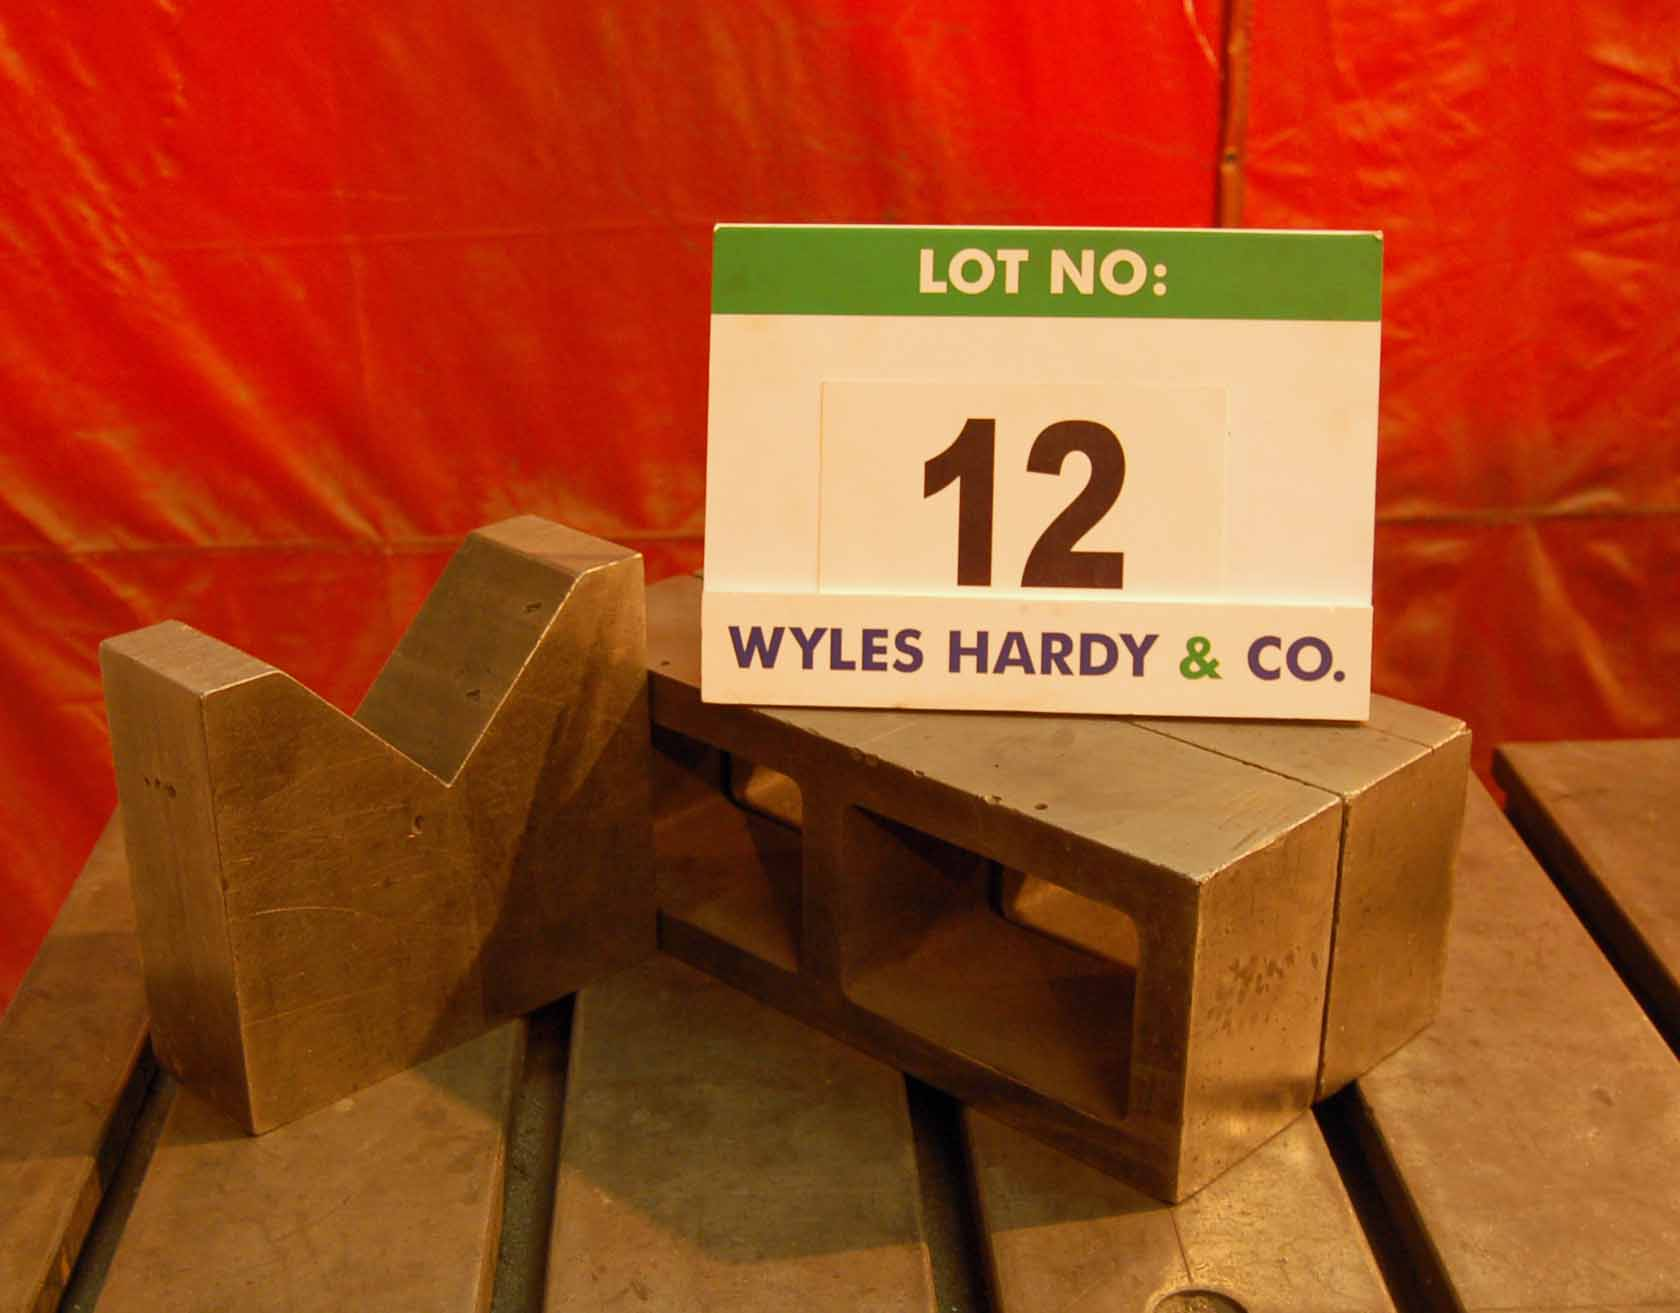 Lot 12 - Two 400mm x 100mm x 150mm Welding Blocks and A 235mm x 85mm x 210mm Vee Block (As Photographed)